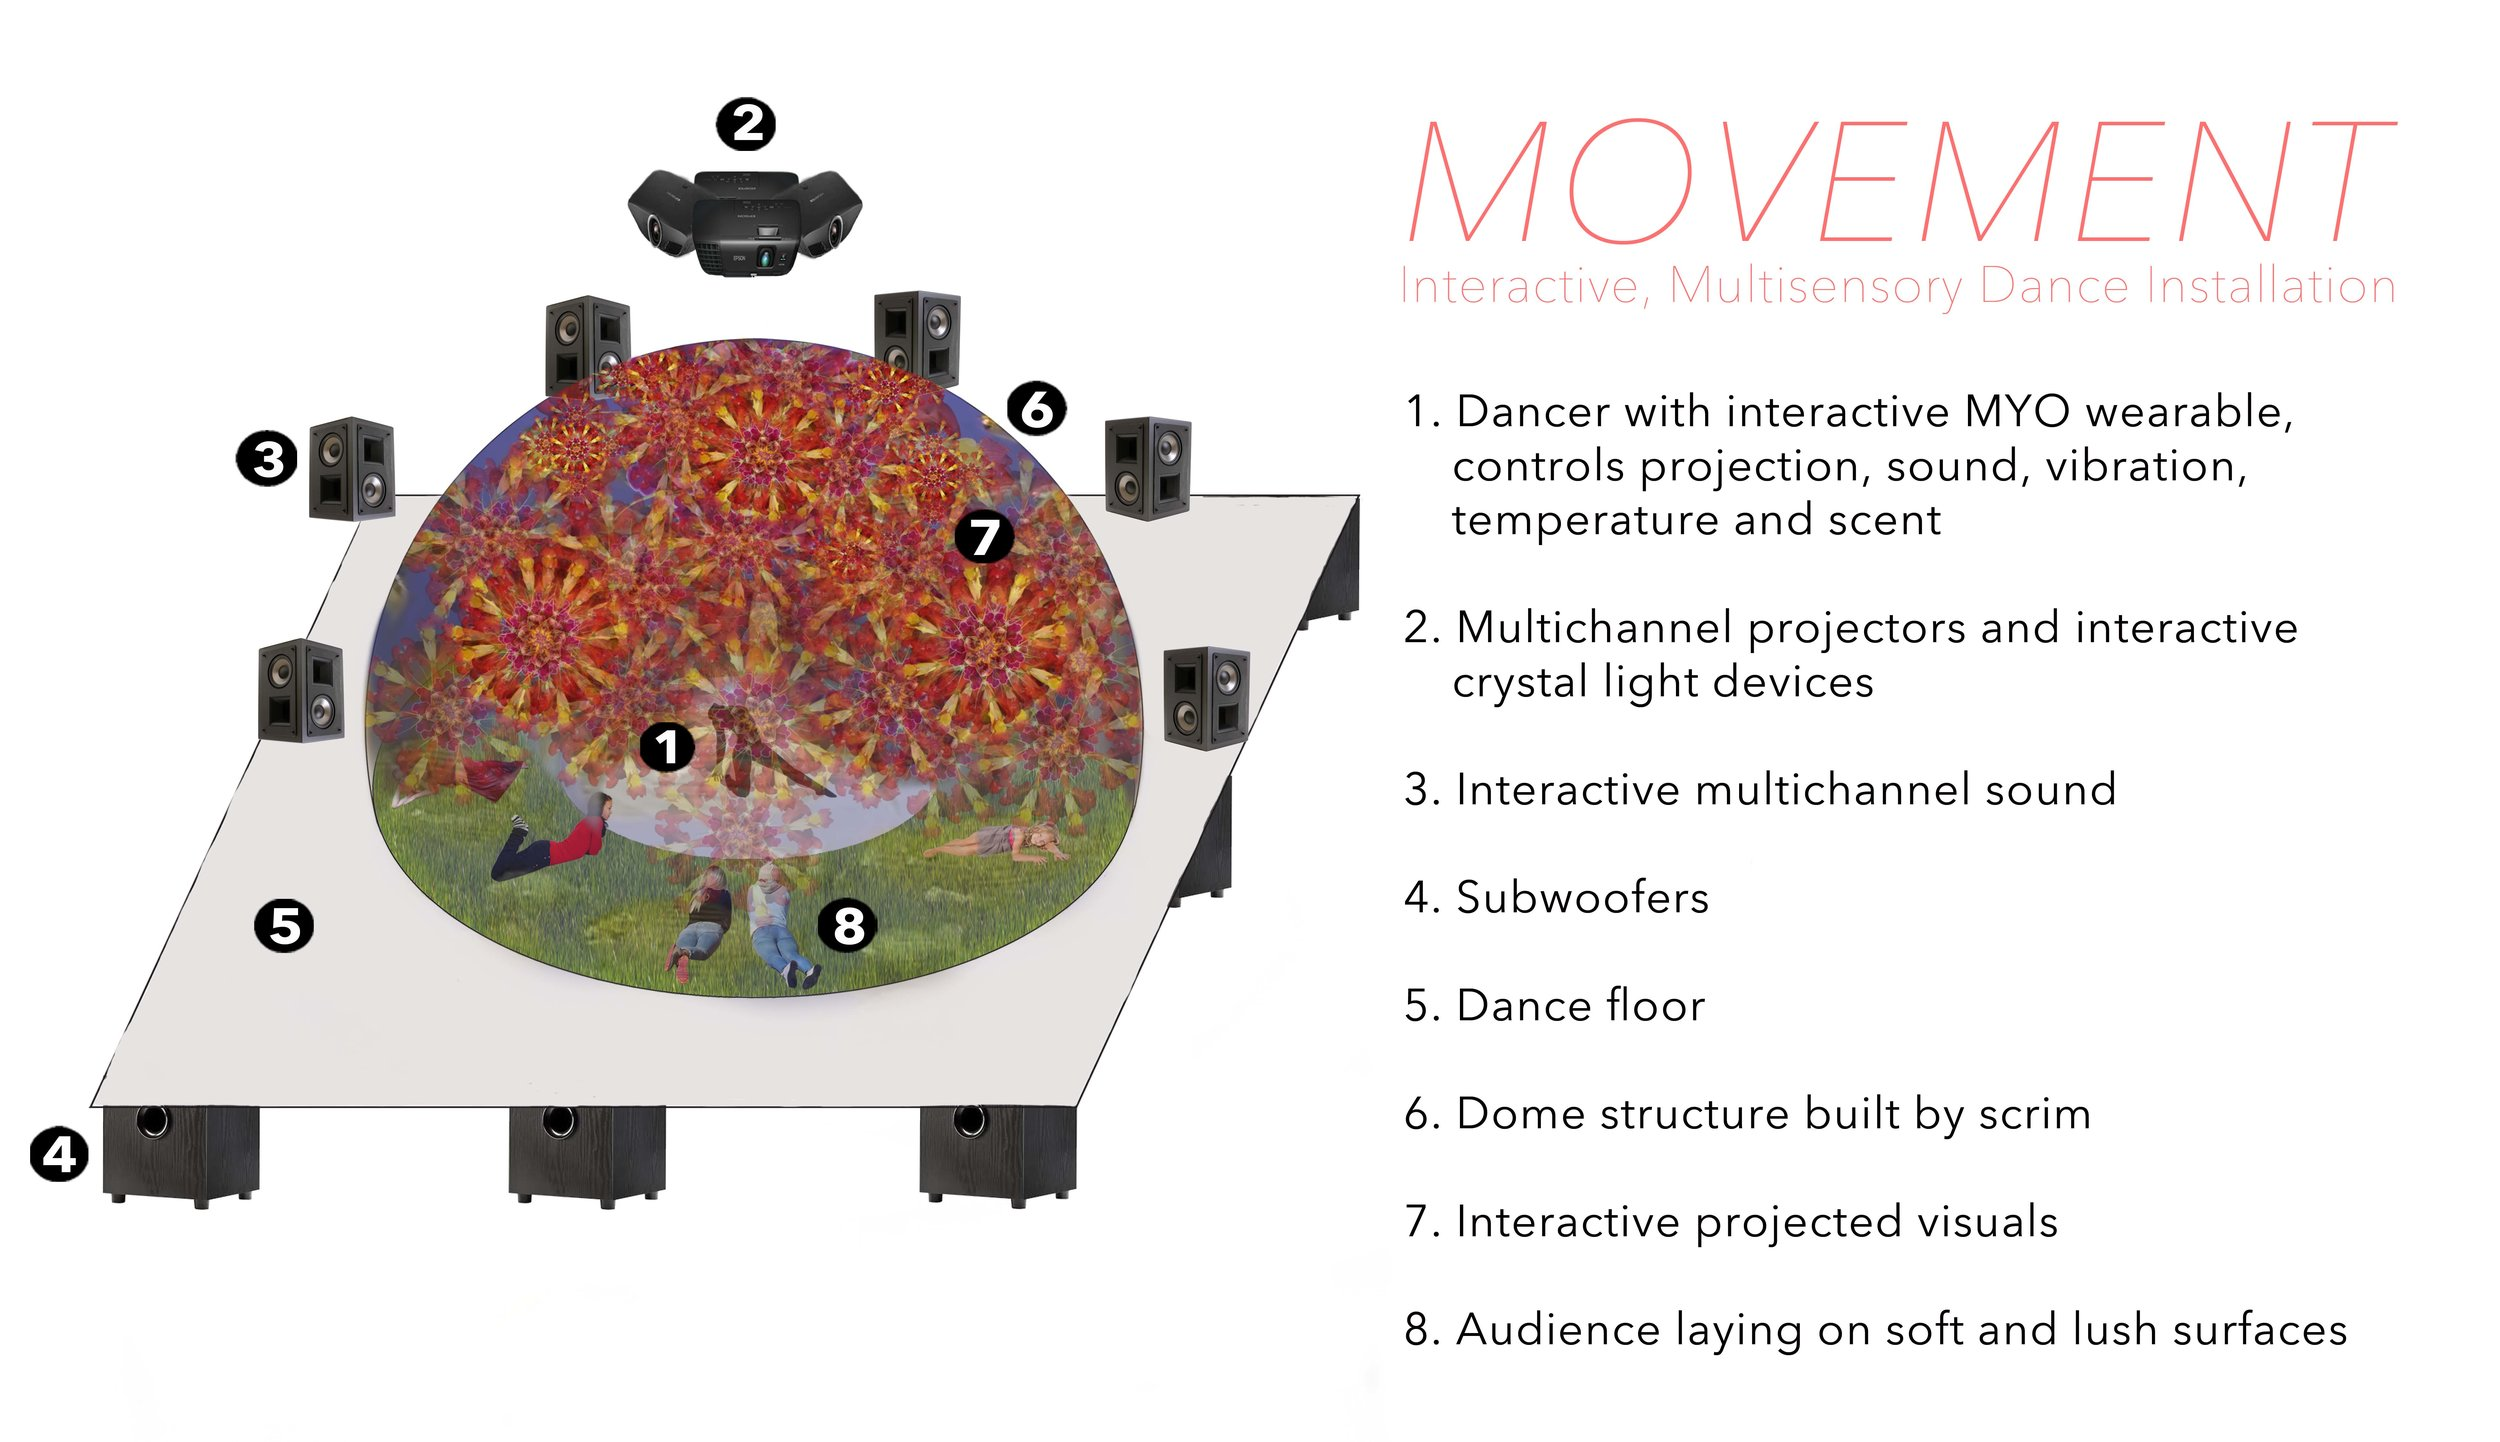 Movement Installation Overview